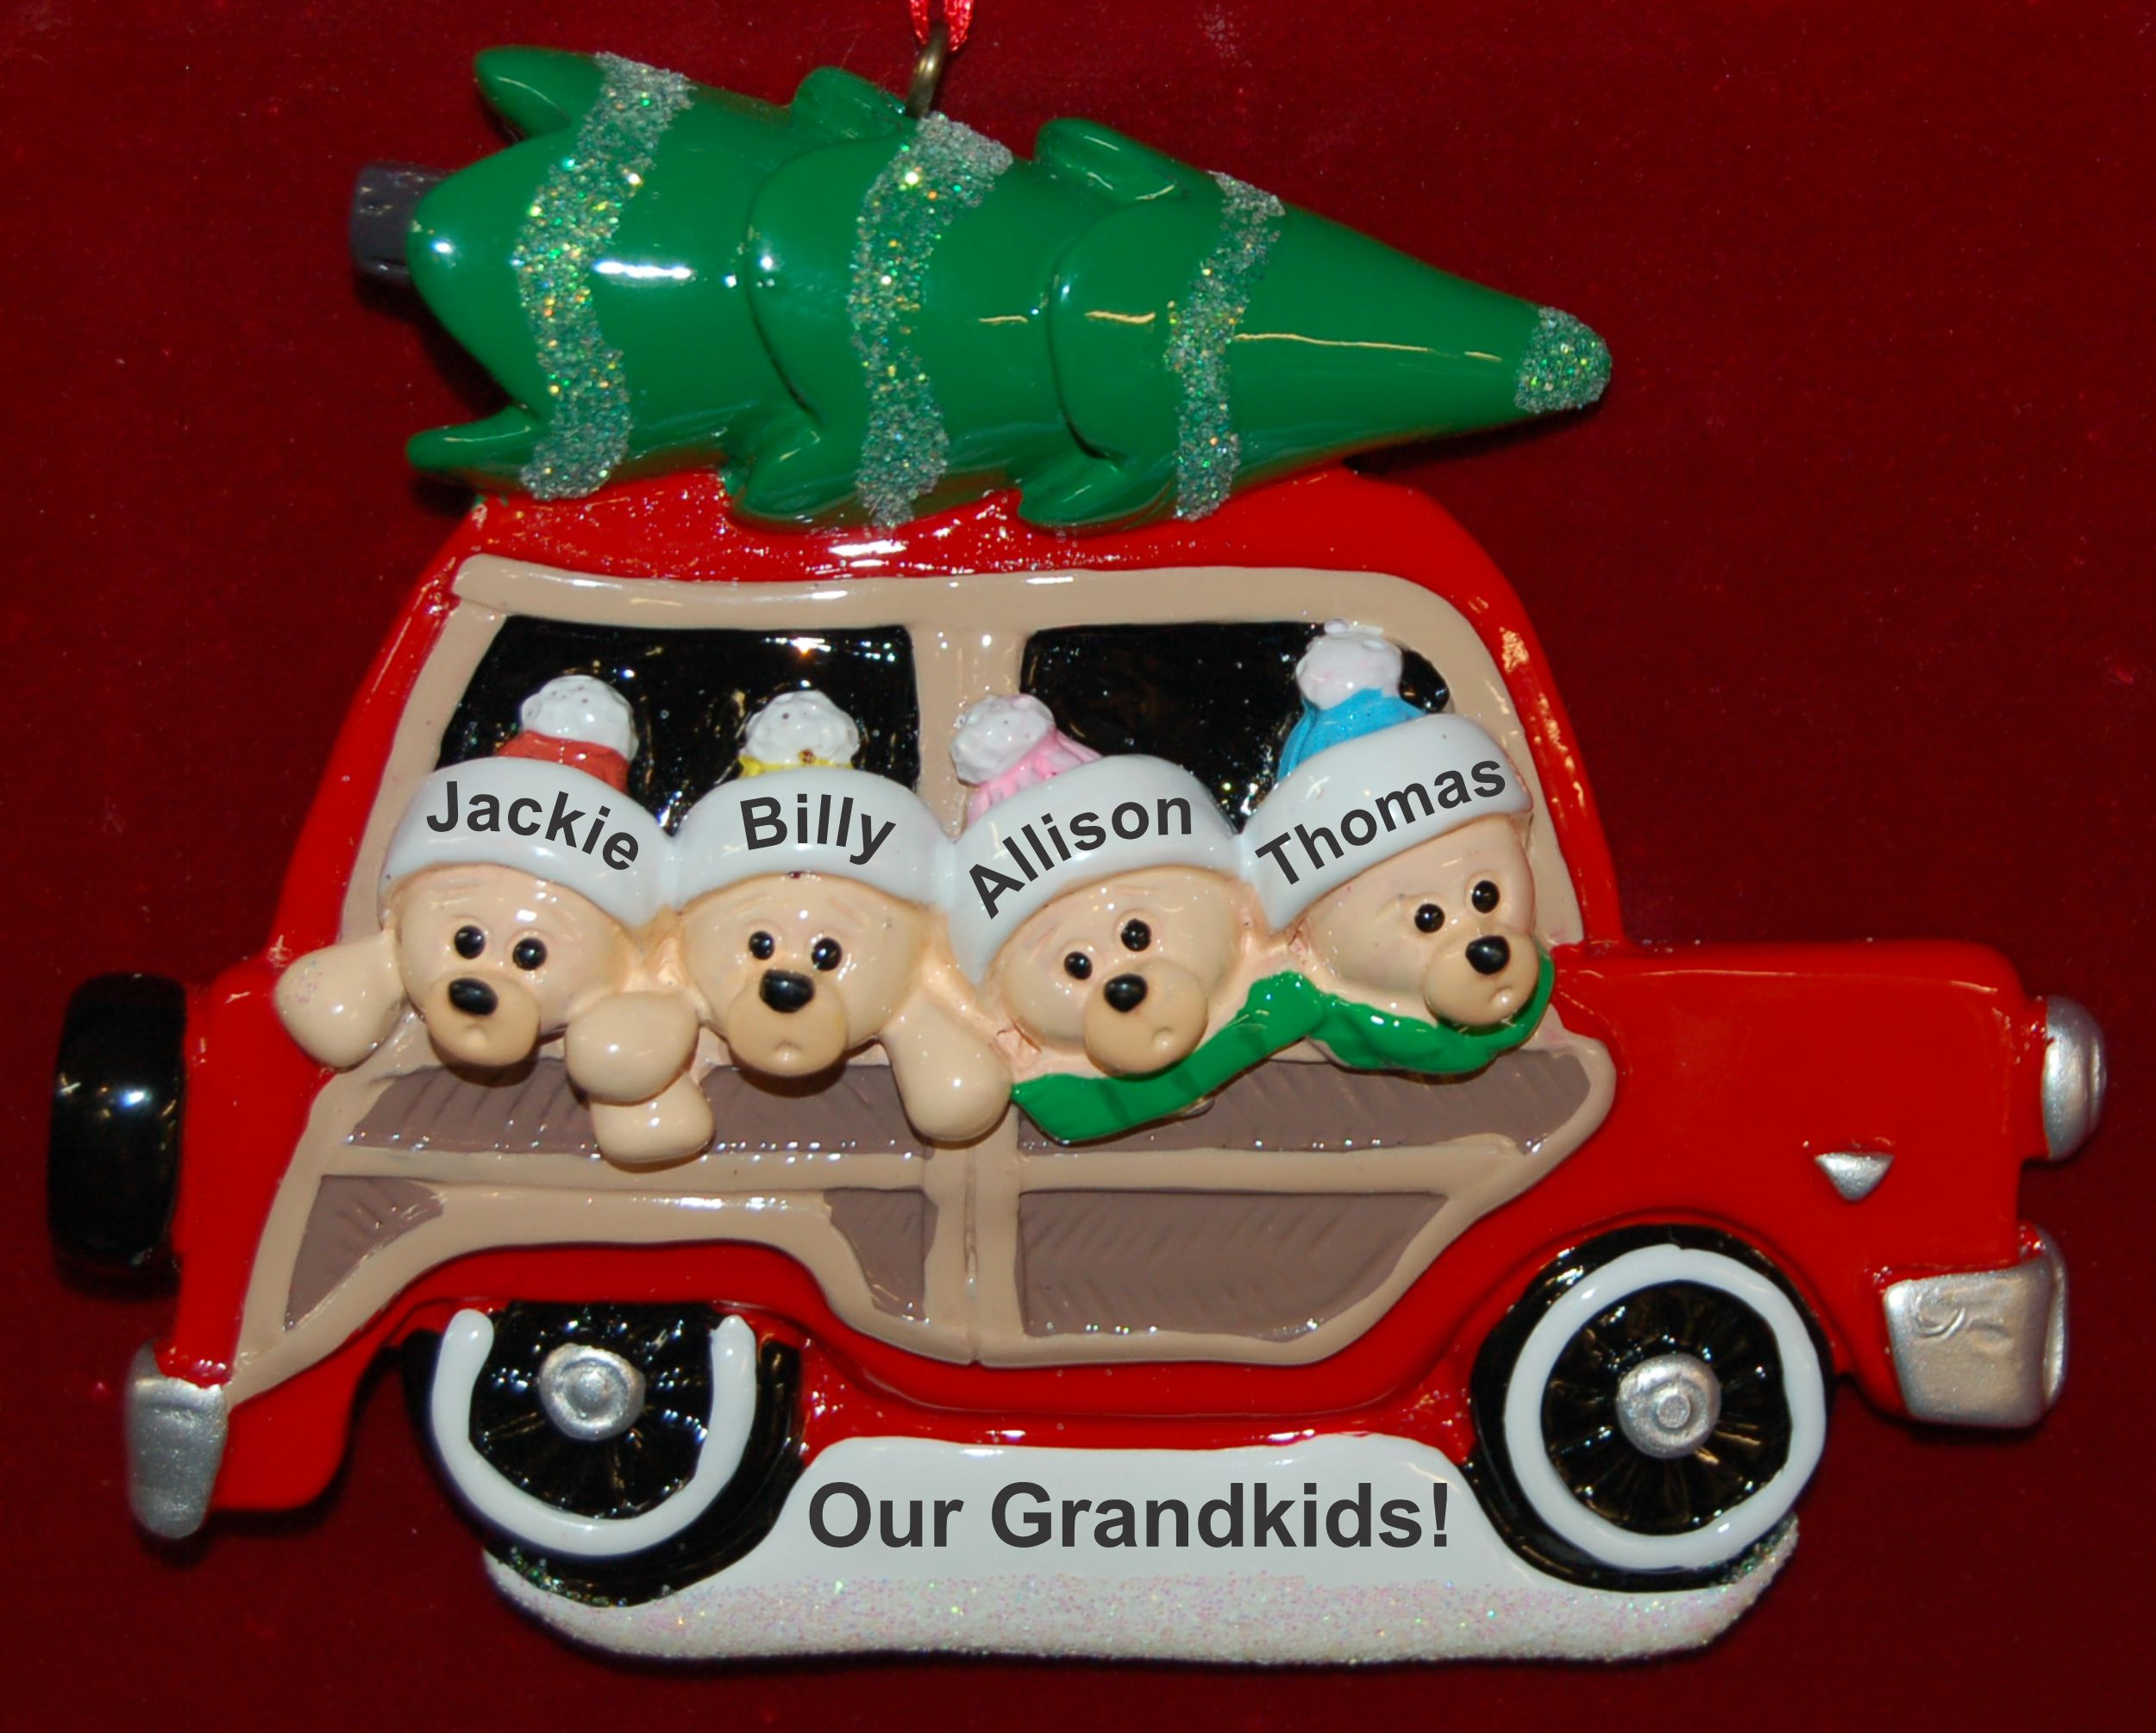 Personalized Grandparents Christmas Ornament Woody 4 Grandkids by Russell Rhodes